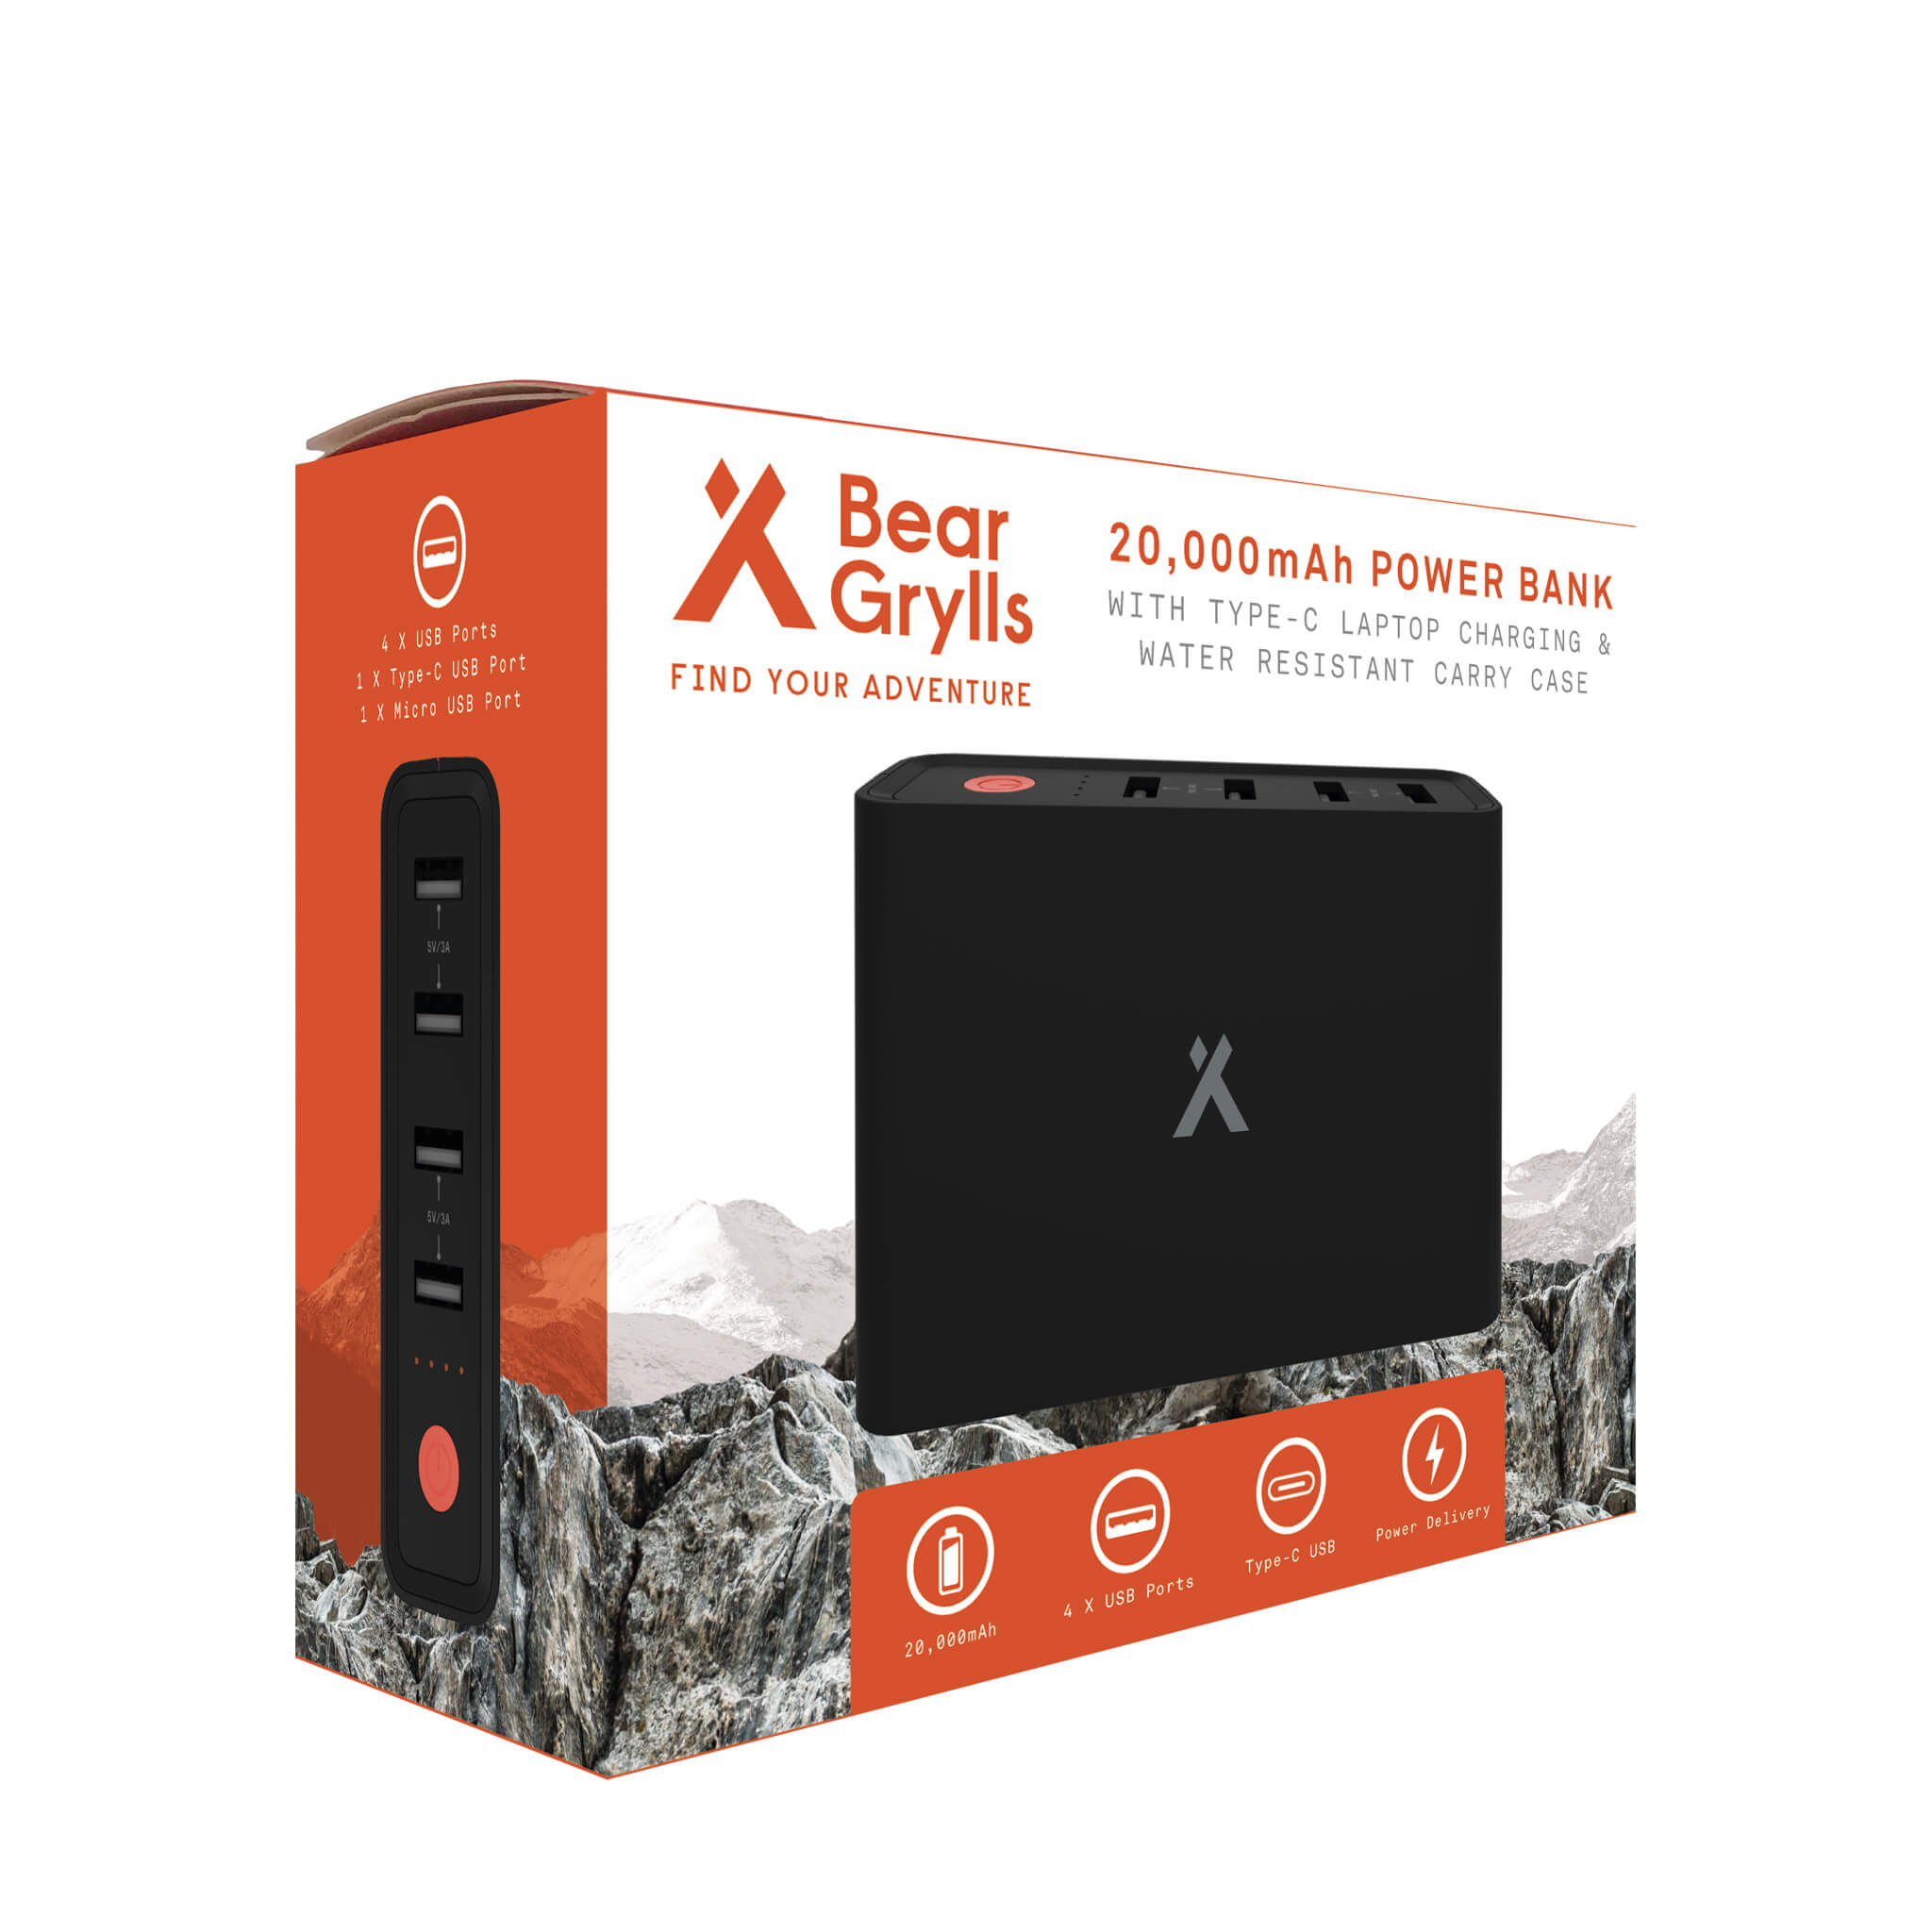 Packing for the Bear Grylls 20,00mAh Power Bank